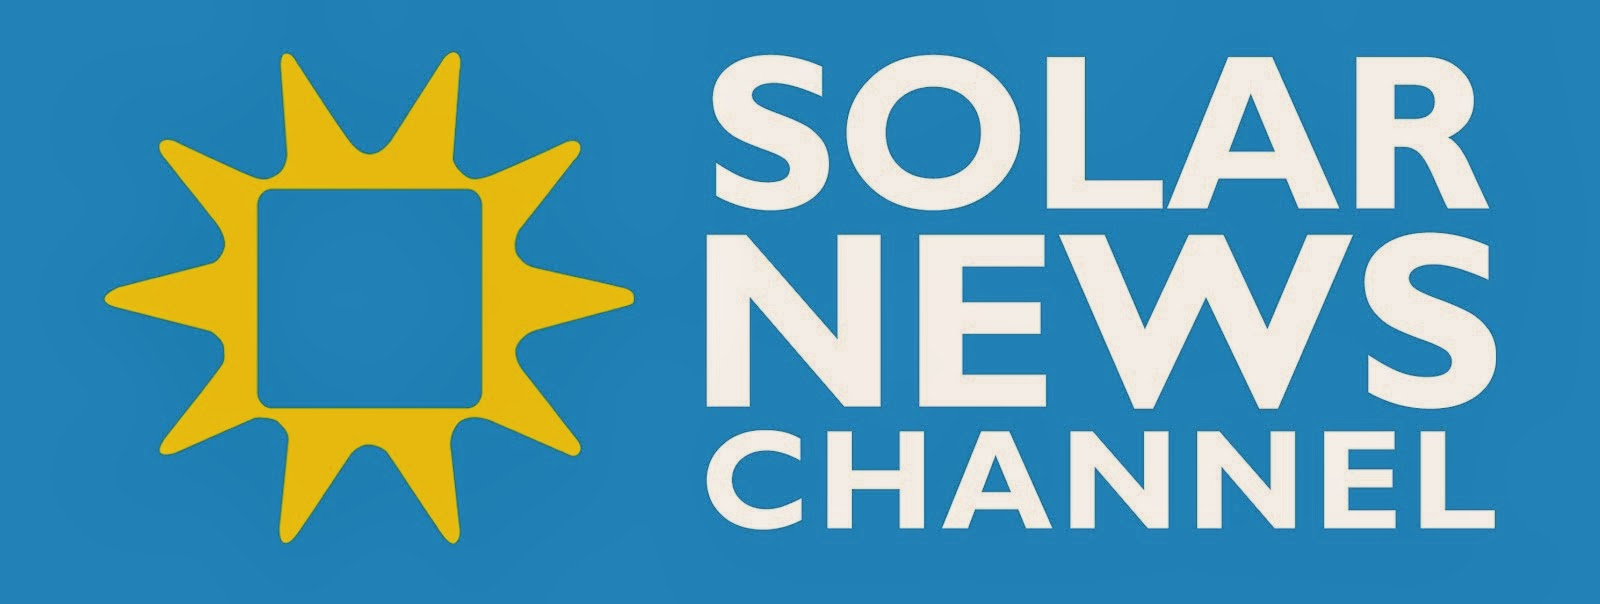 SOLAR NEWS Channel Manila